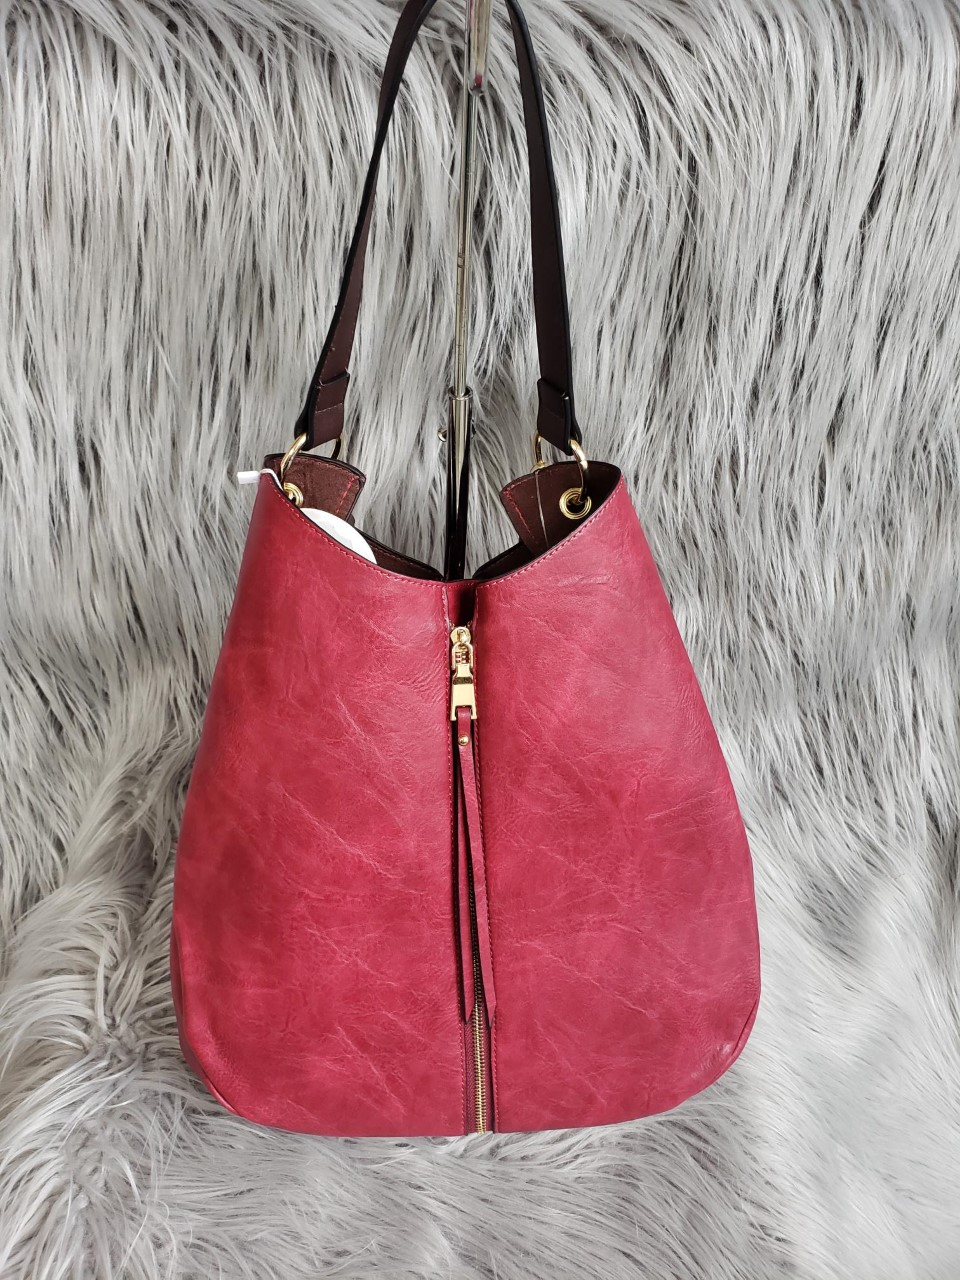 Burgundy Convertible Purse with Detachable Clutch (102871728 Couture Fashion) photo